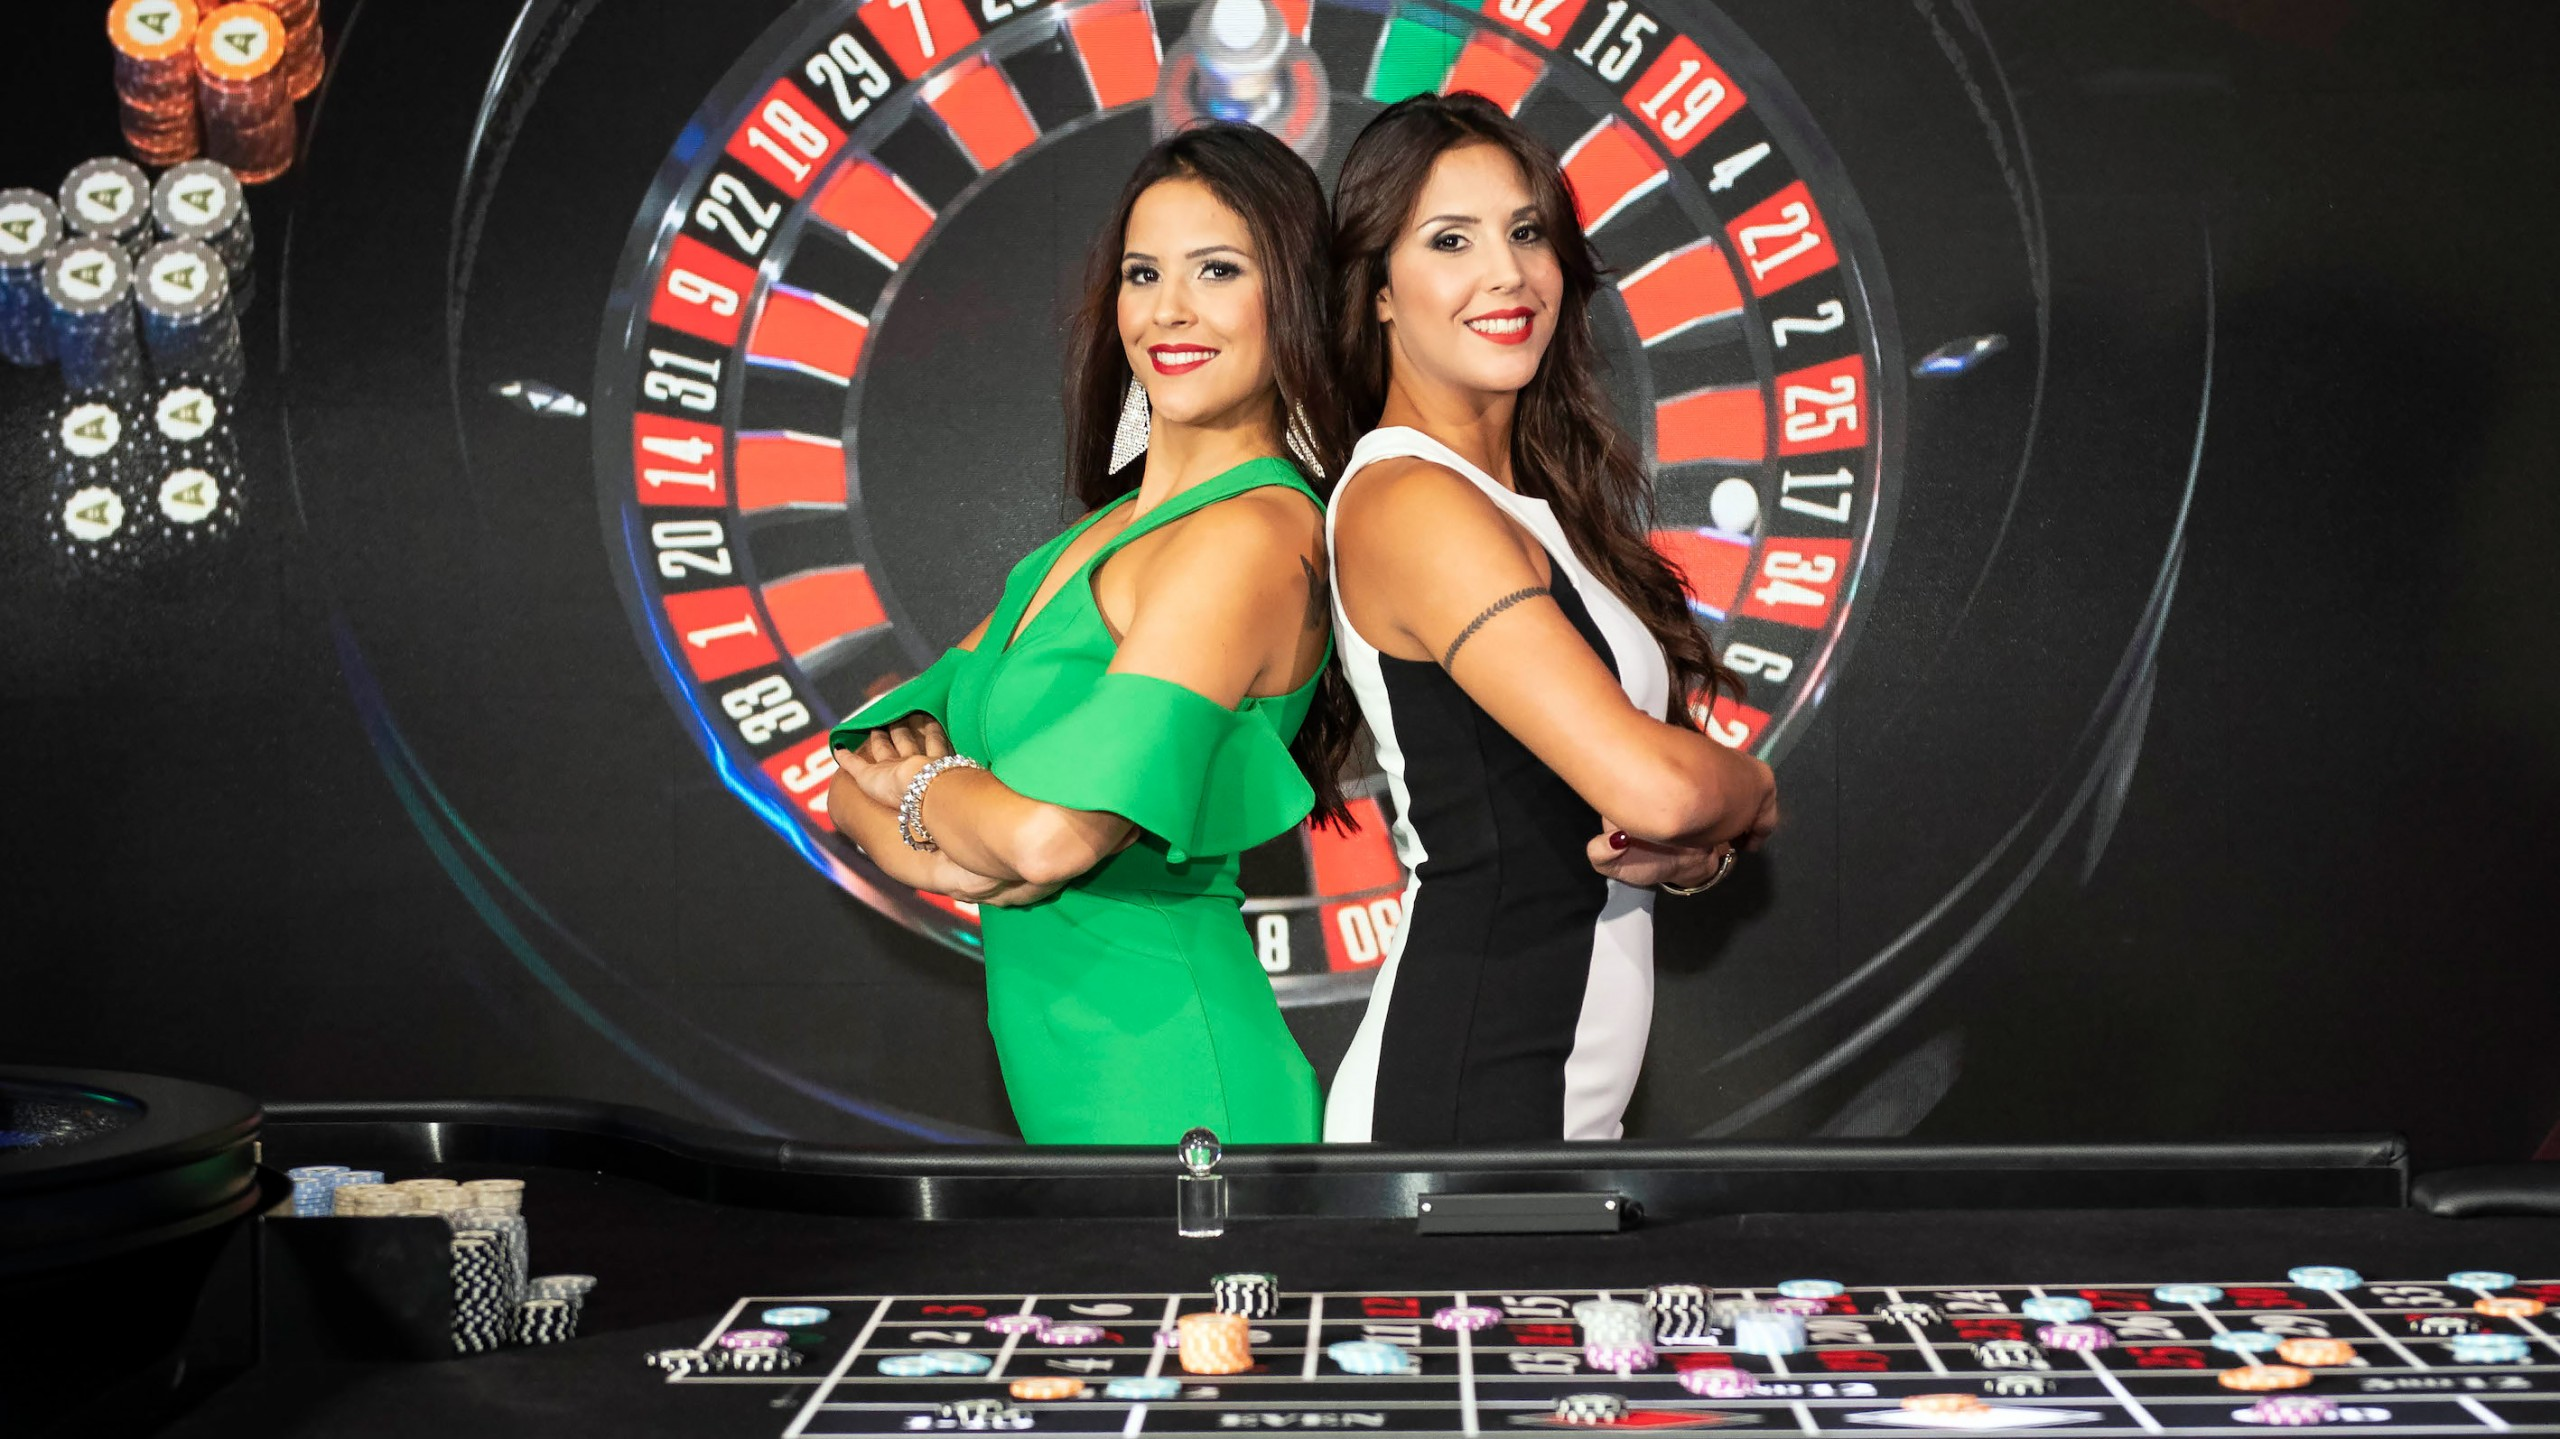 Easy to Follow Rules of Roulette